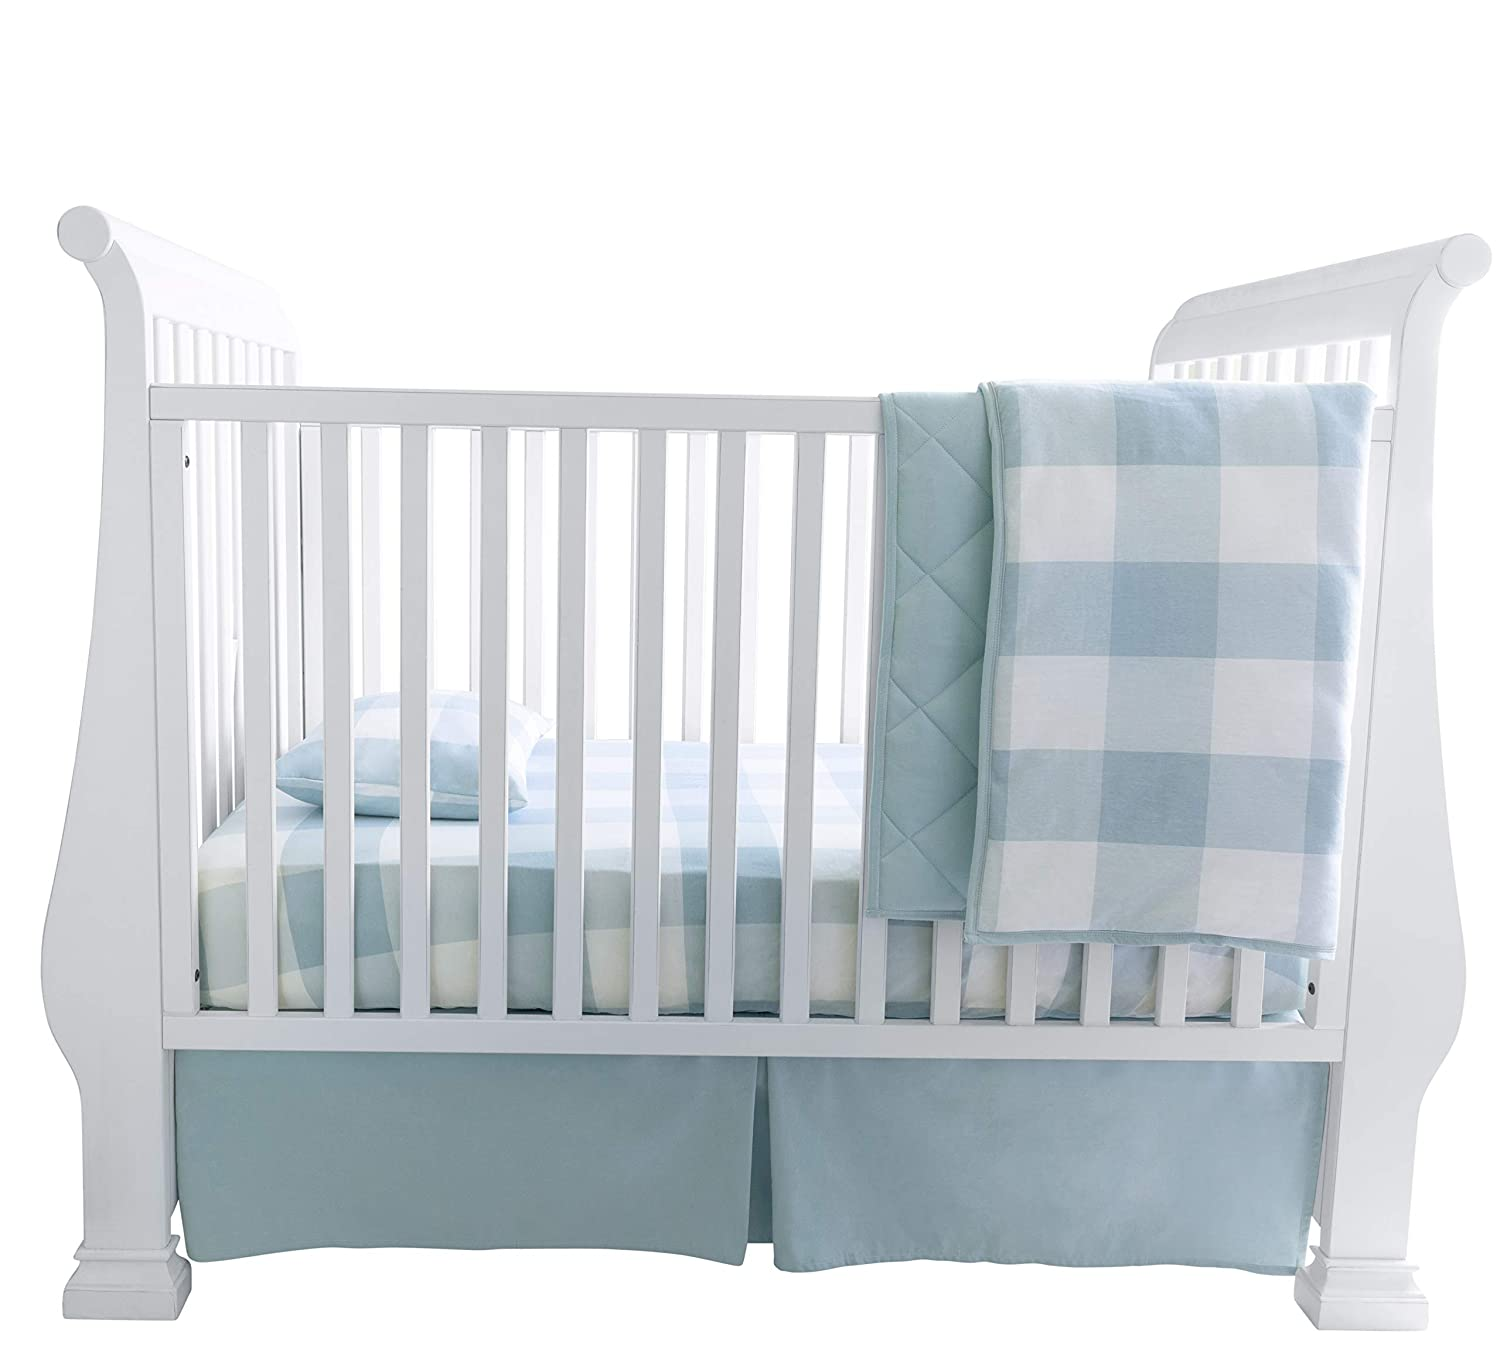 Baby Crib Bedding Sets for Boys and Girls — 4 Piece Set Includes Crib Sheet, Quilted Blanket, Crib Skirt and Baby Pillowcase — Gingham Design in Dusty Blue